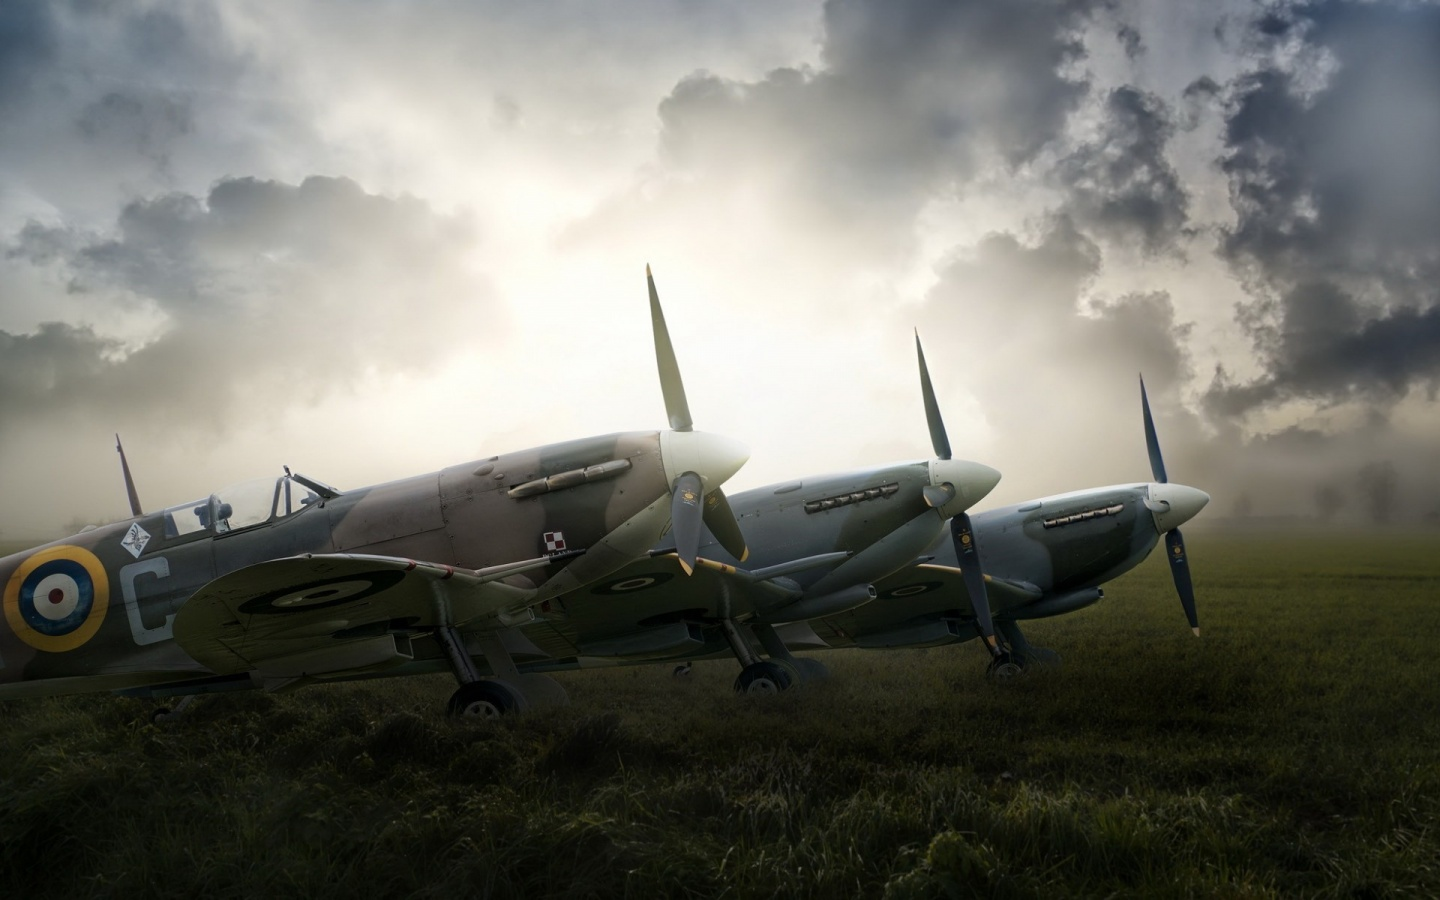 airplane hd image with View Aircraft Field Fog 1440x900 on Image90 additionally Future airplane gallery27 furthermore View Aircraft field fog 1440x900 likewise Landing Into The Sunset Andrew Soundarajan as well Alesha Dixon Wallpapers.